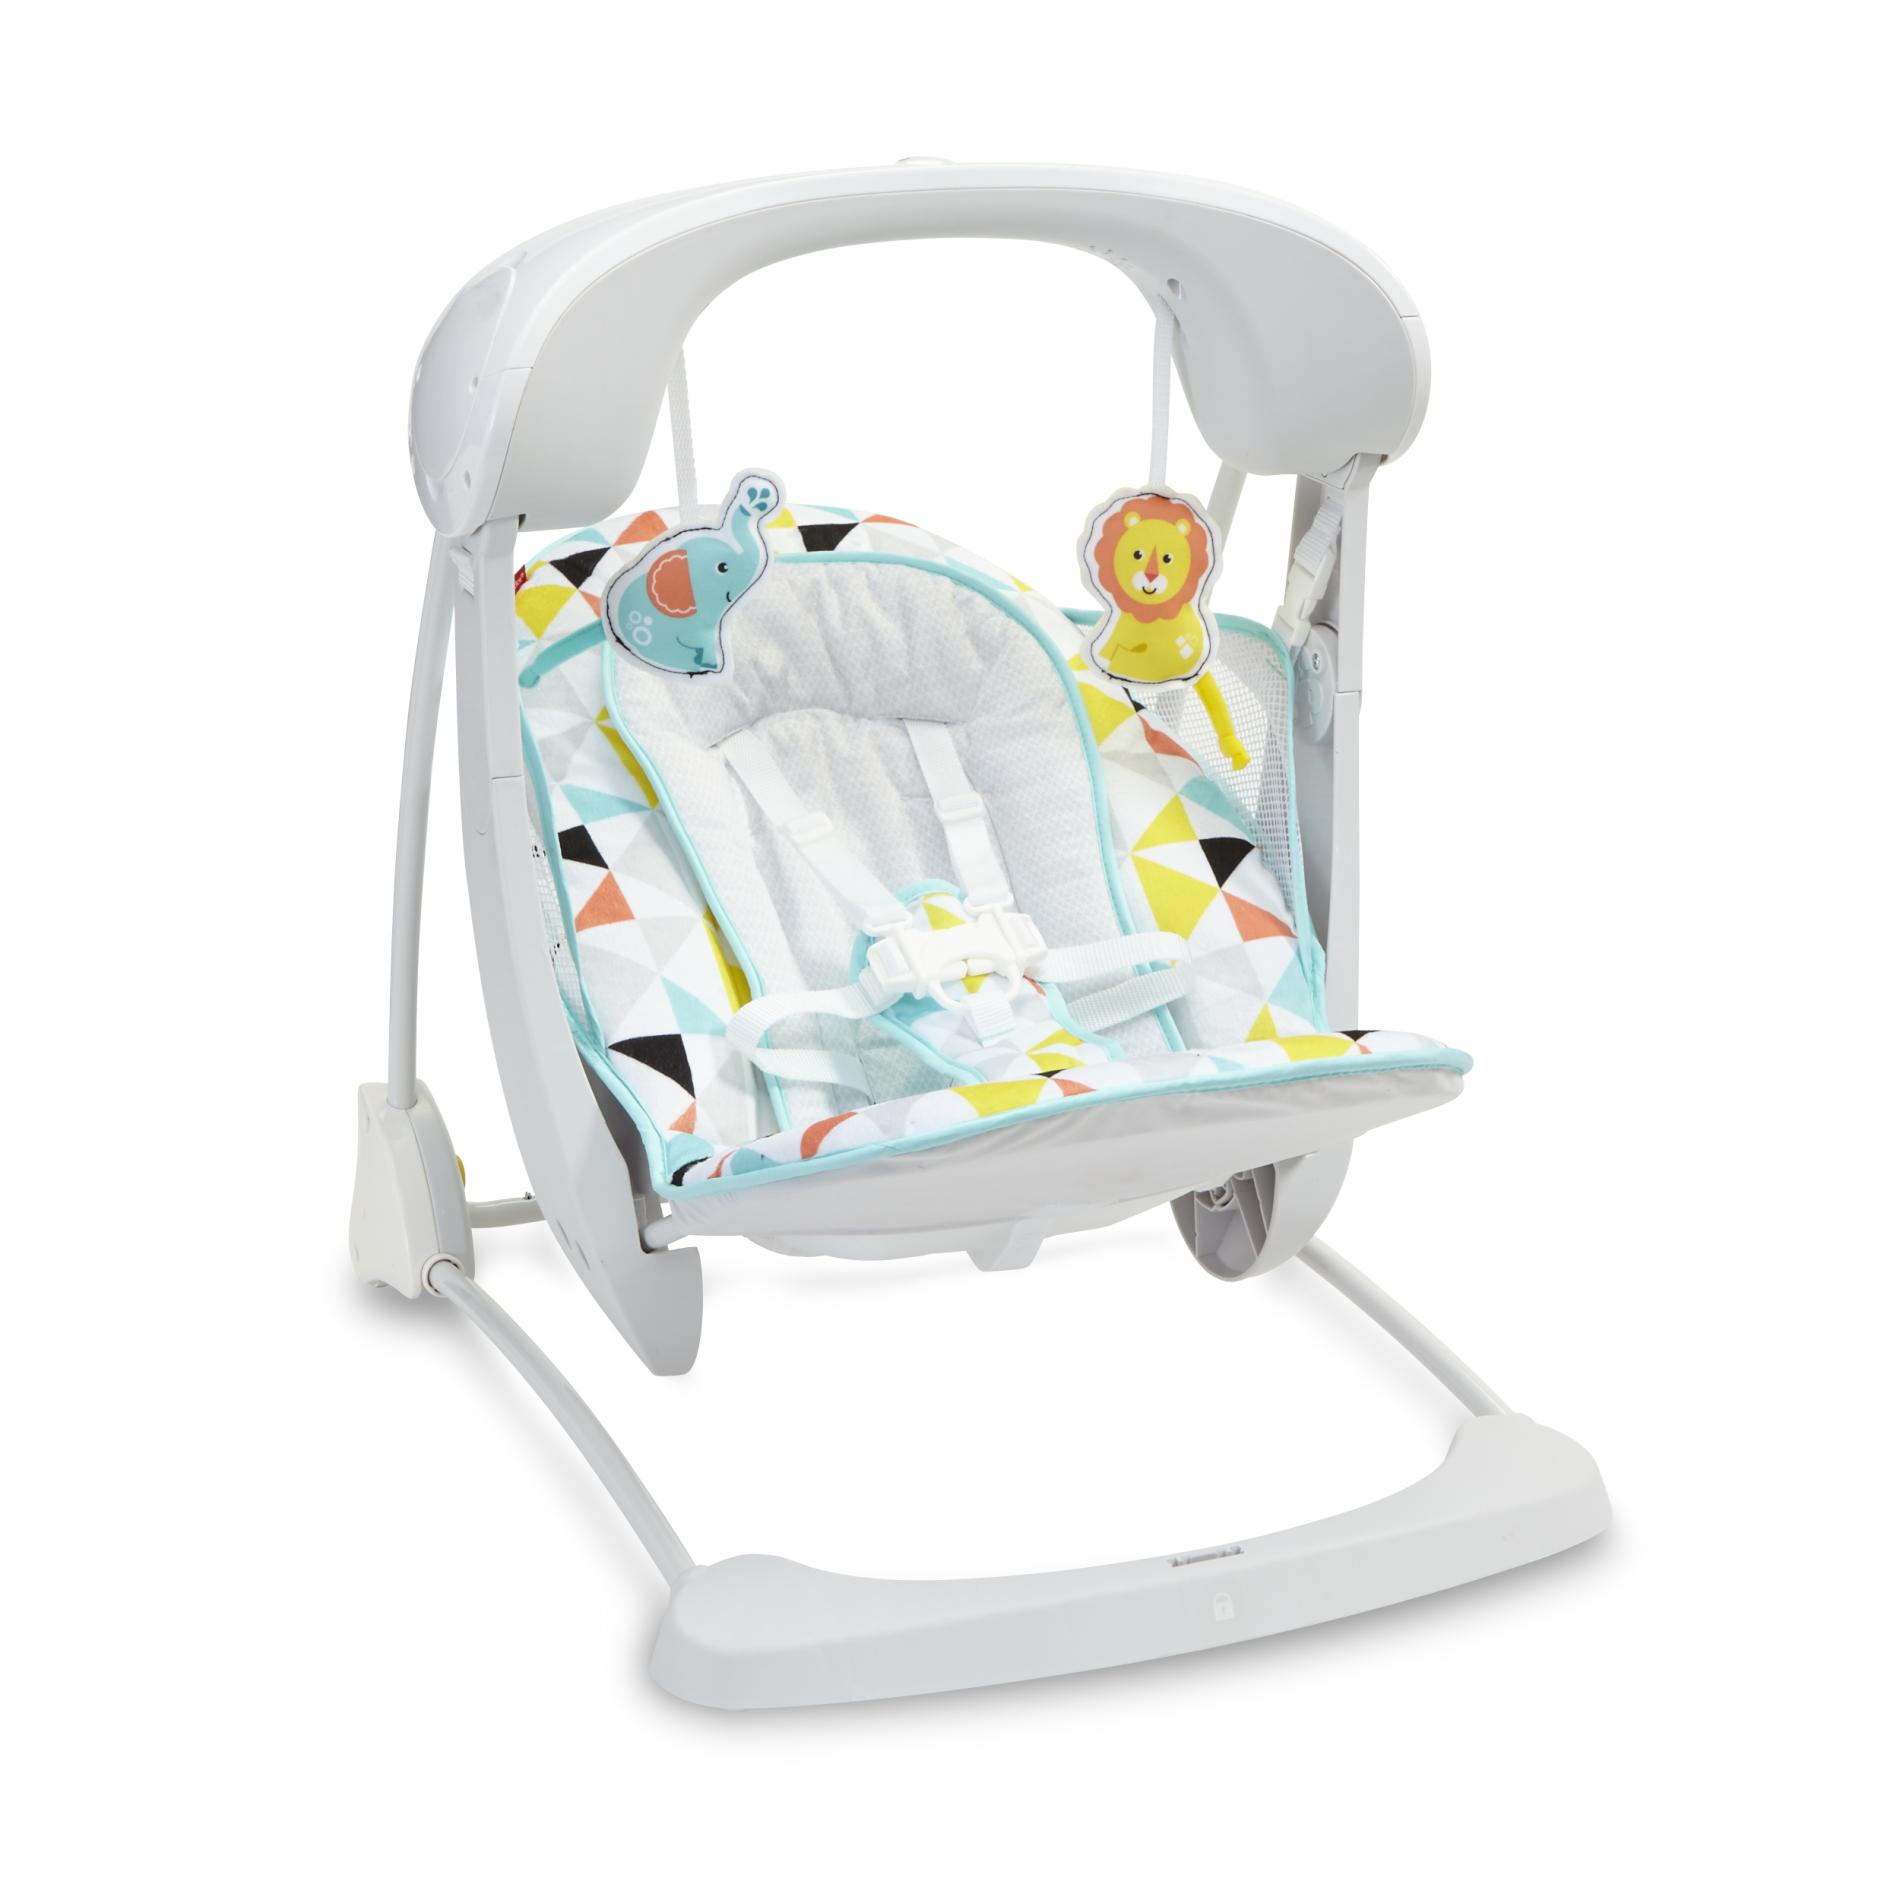 Fisher-Price Deluxe Take-Along Swing & Seat - Geometric